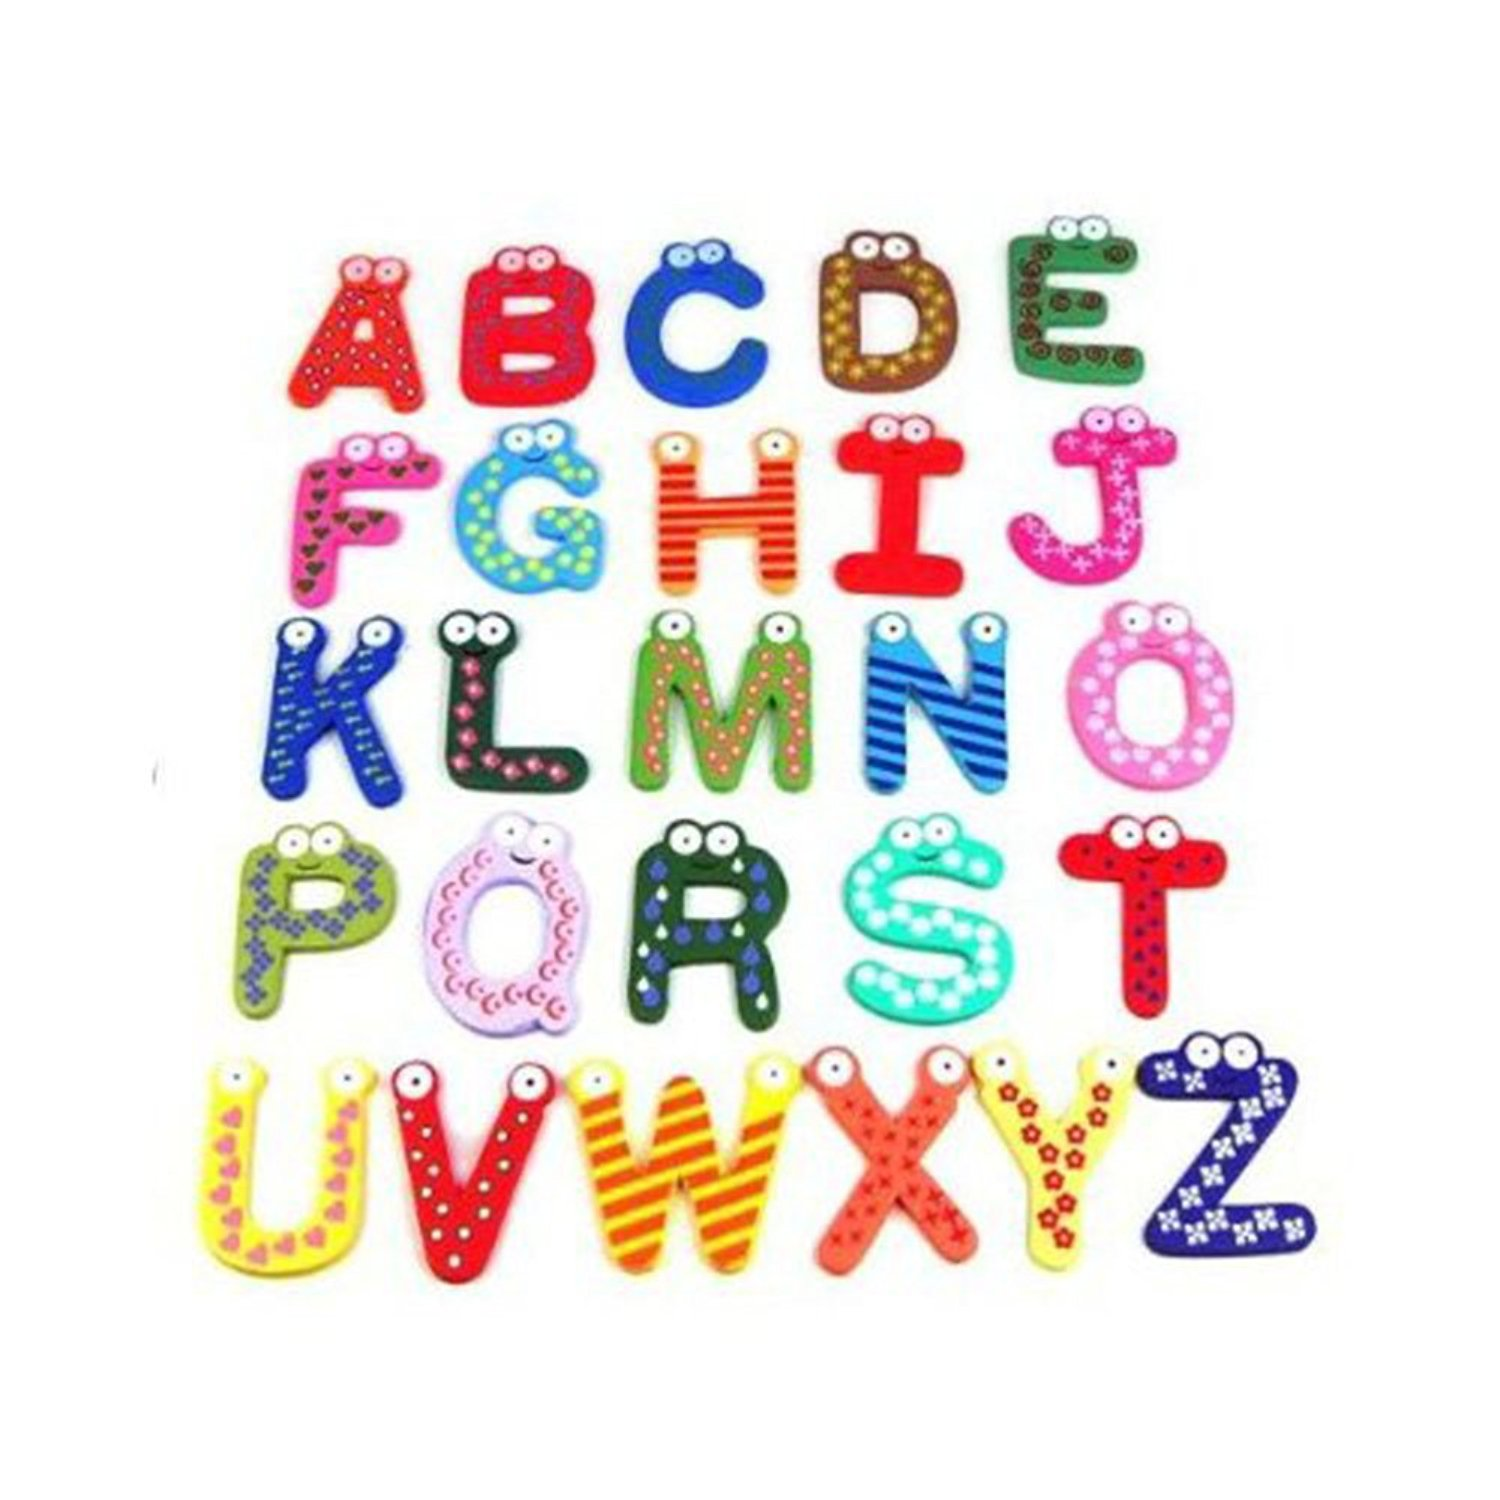 iecool Funky Fun Colorful Magnetic Letters A-Z Wooden Fridge Magnets Kid Toys Education